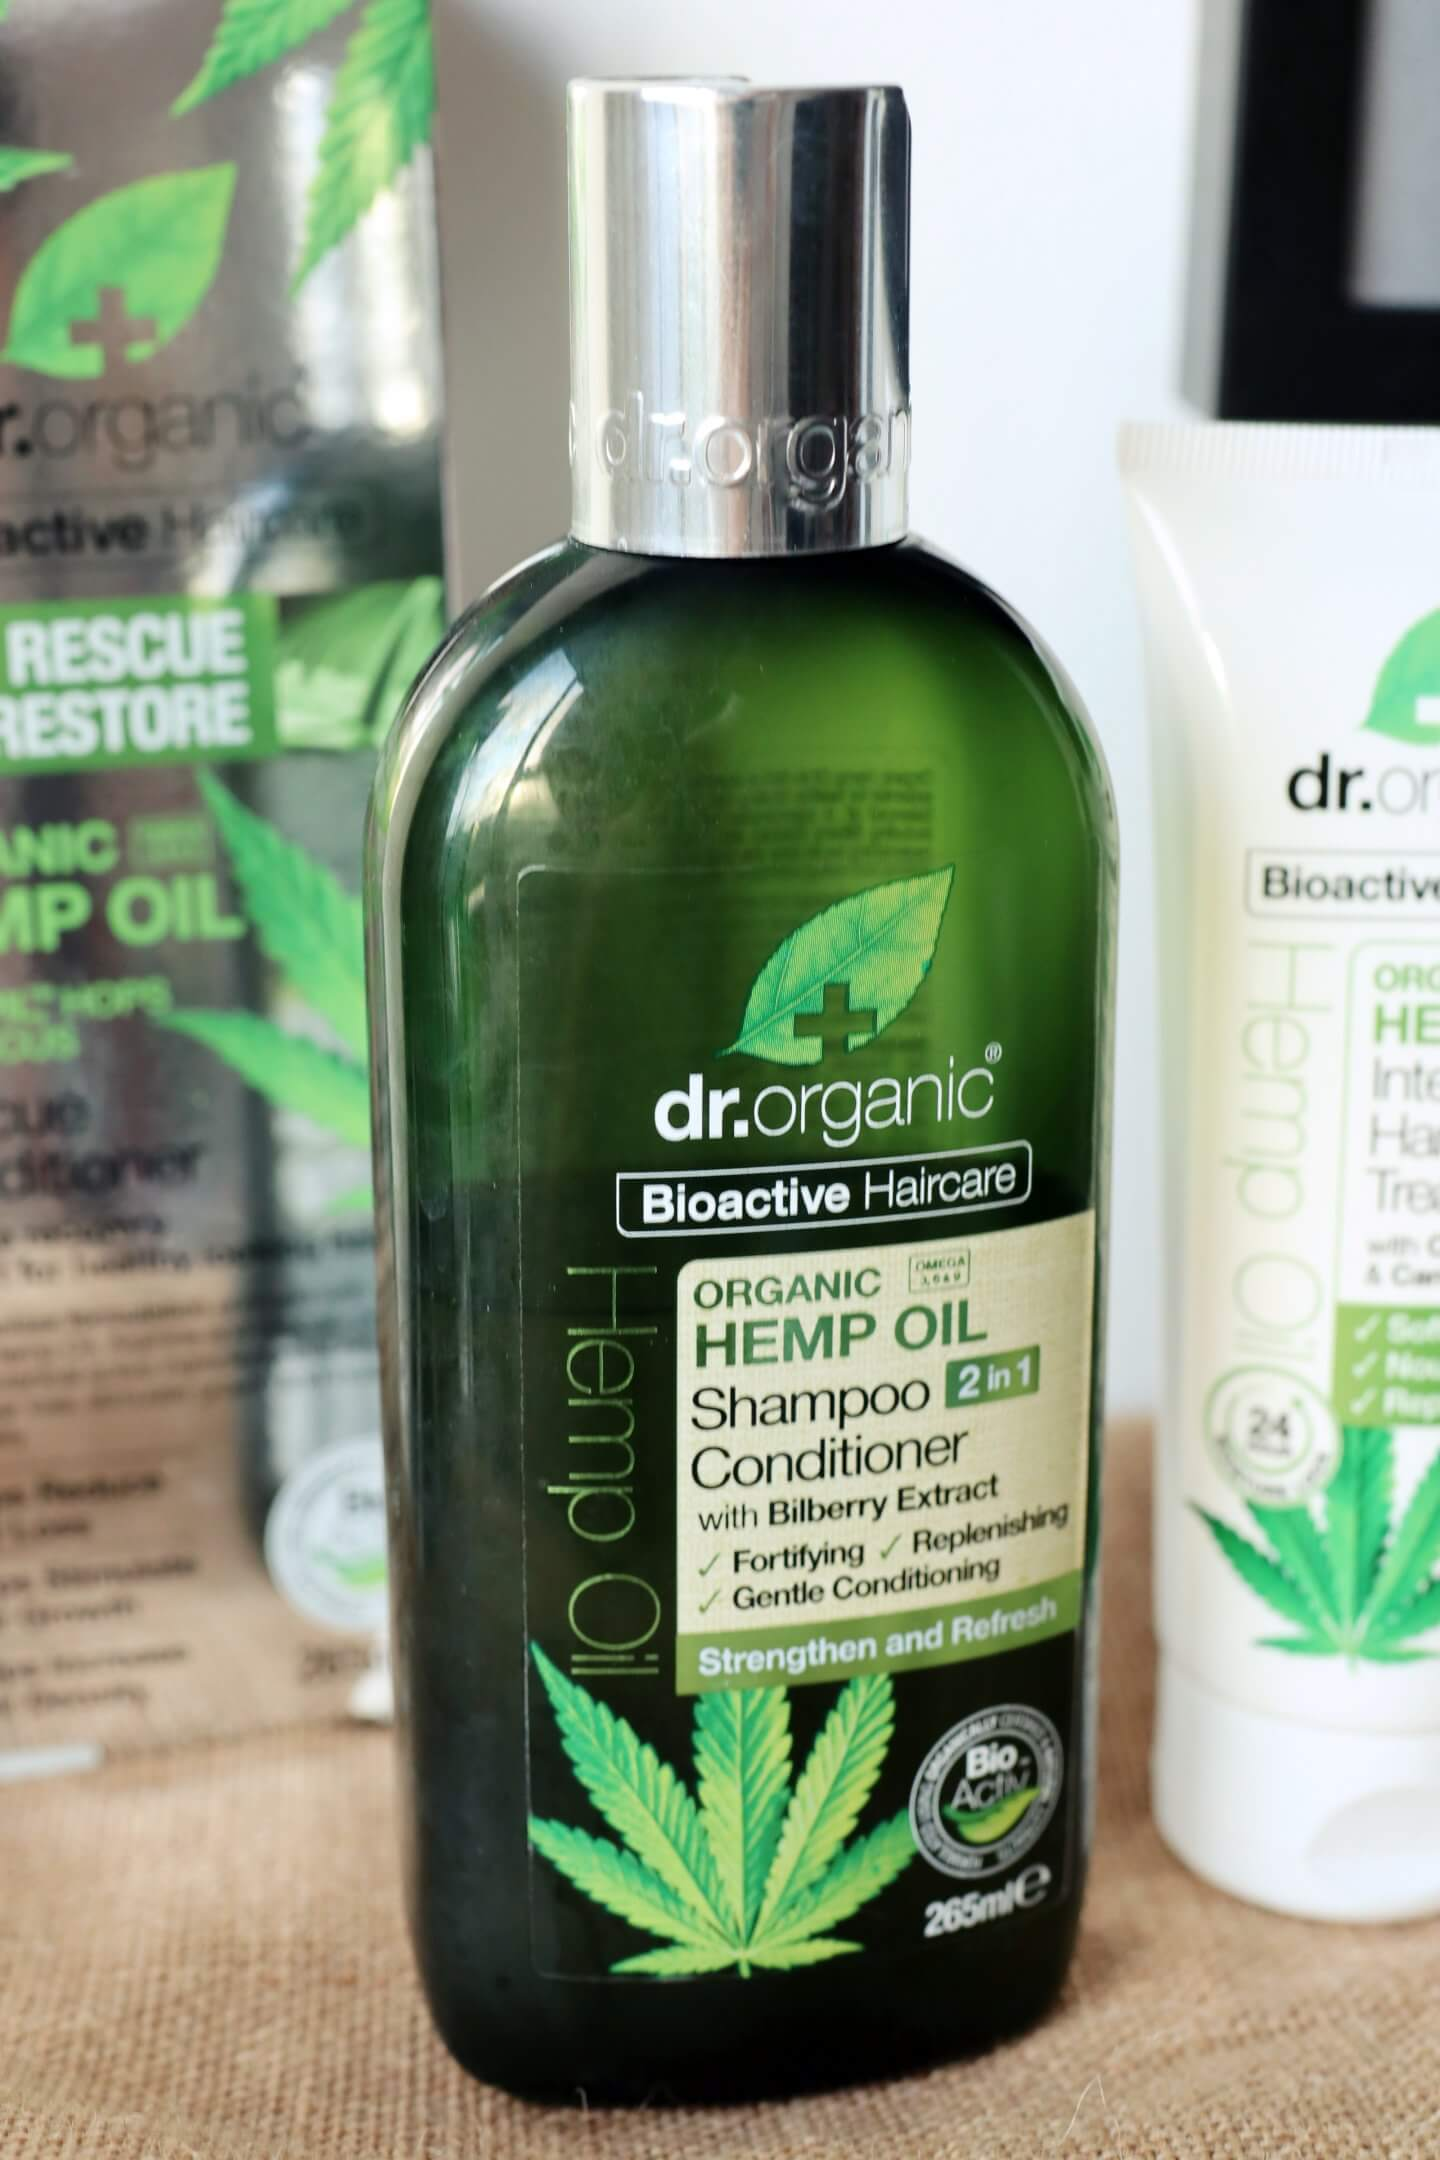 Always struggling with a dry and sensitive scalp? This new dr organic shampoo is perfect to solve this problem! Find out how to combat a dry and sensitive scalp today! #shampoo #conditioner #dryscalp #sensitivescalp